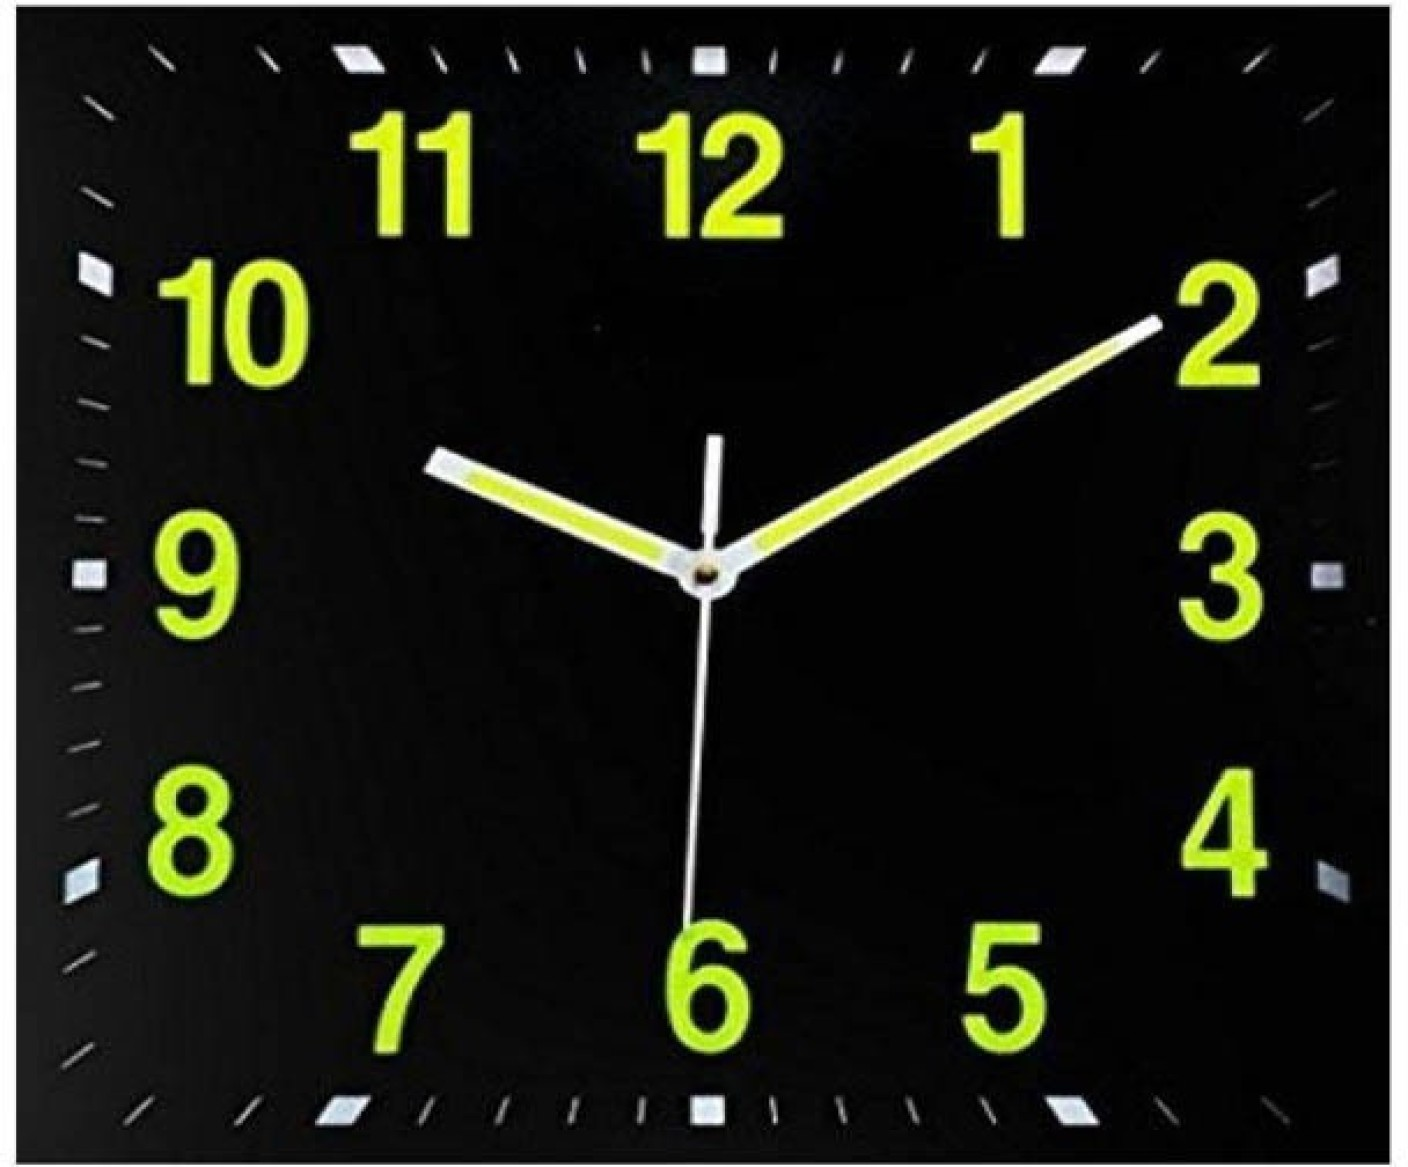 Glow wall clock images home wall decoration ideas glowing wall clock image collections home wall decoration ideas glowing wall clock gallery home wall decoration ideas glowing wall clock choice image home amipublicfo Images